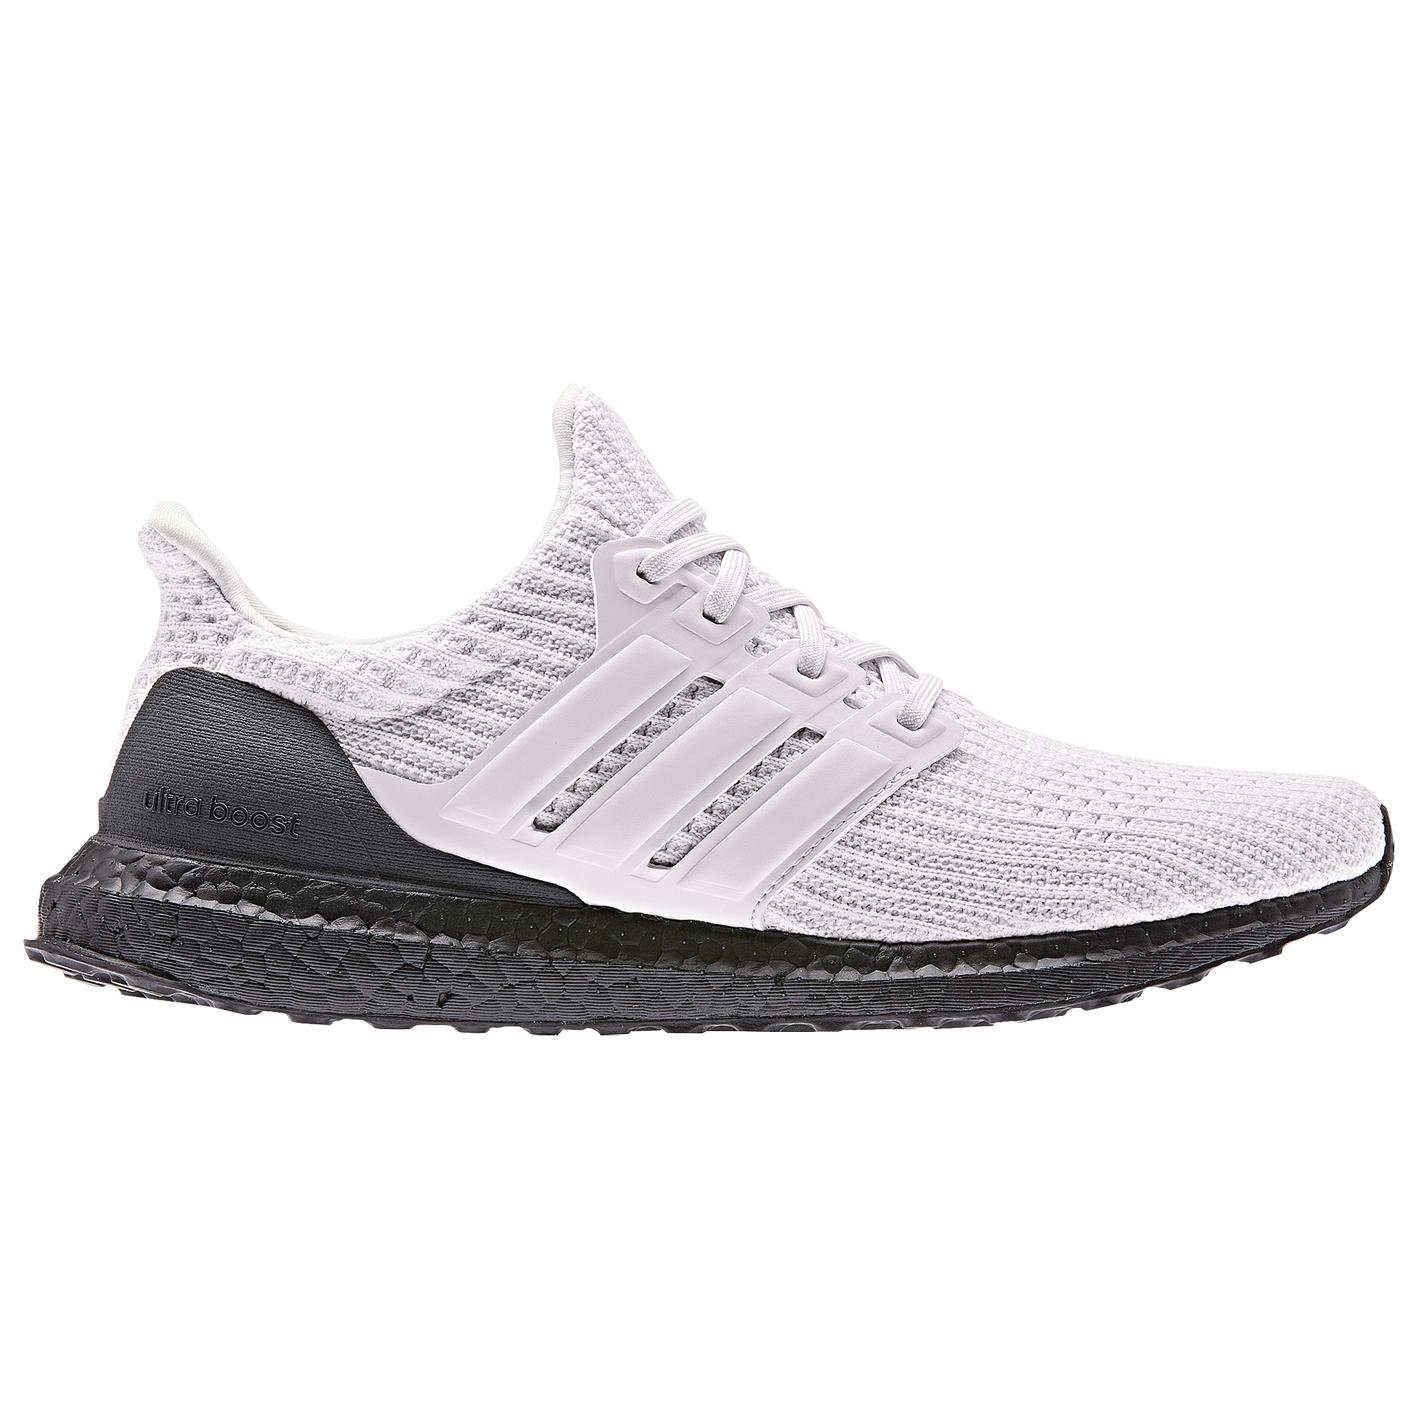 abf212333 adidas Ultraboost - Men s - Running - Shoes - White Orchid Tint Black